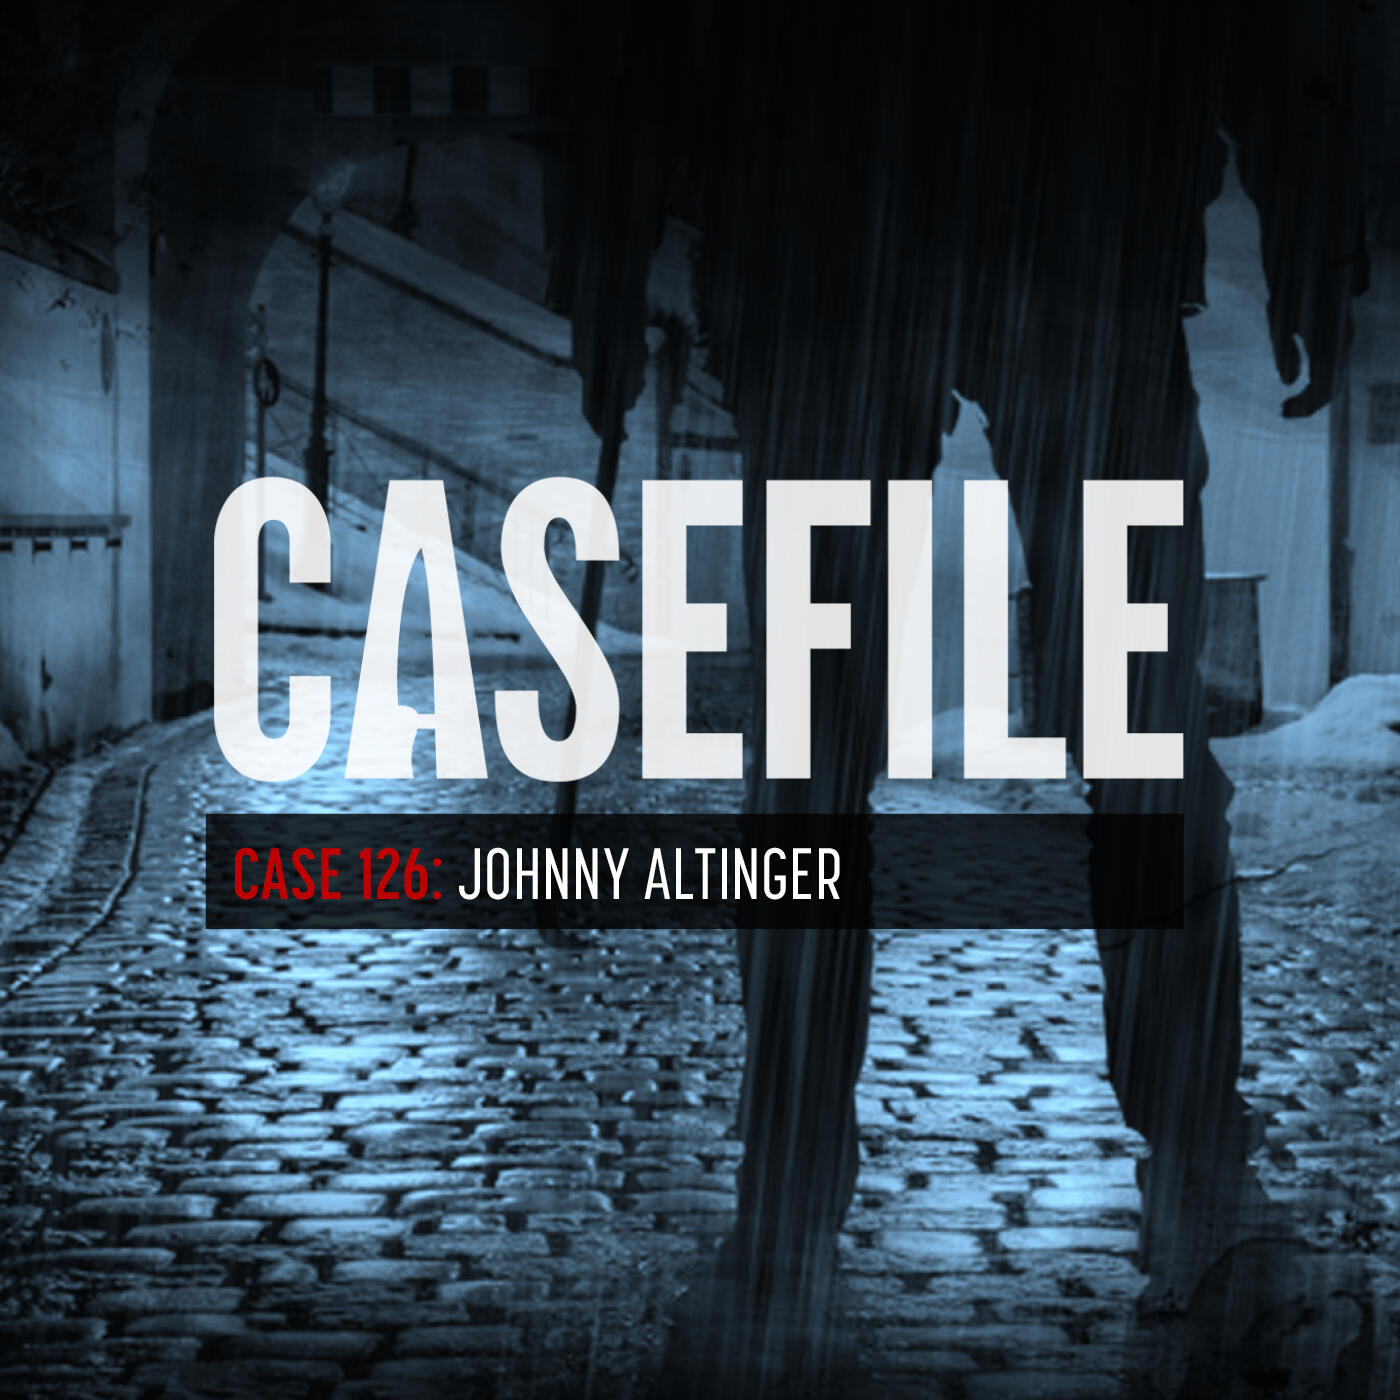 Case 126: Johnny Altinger